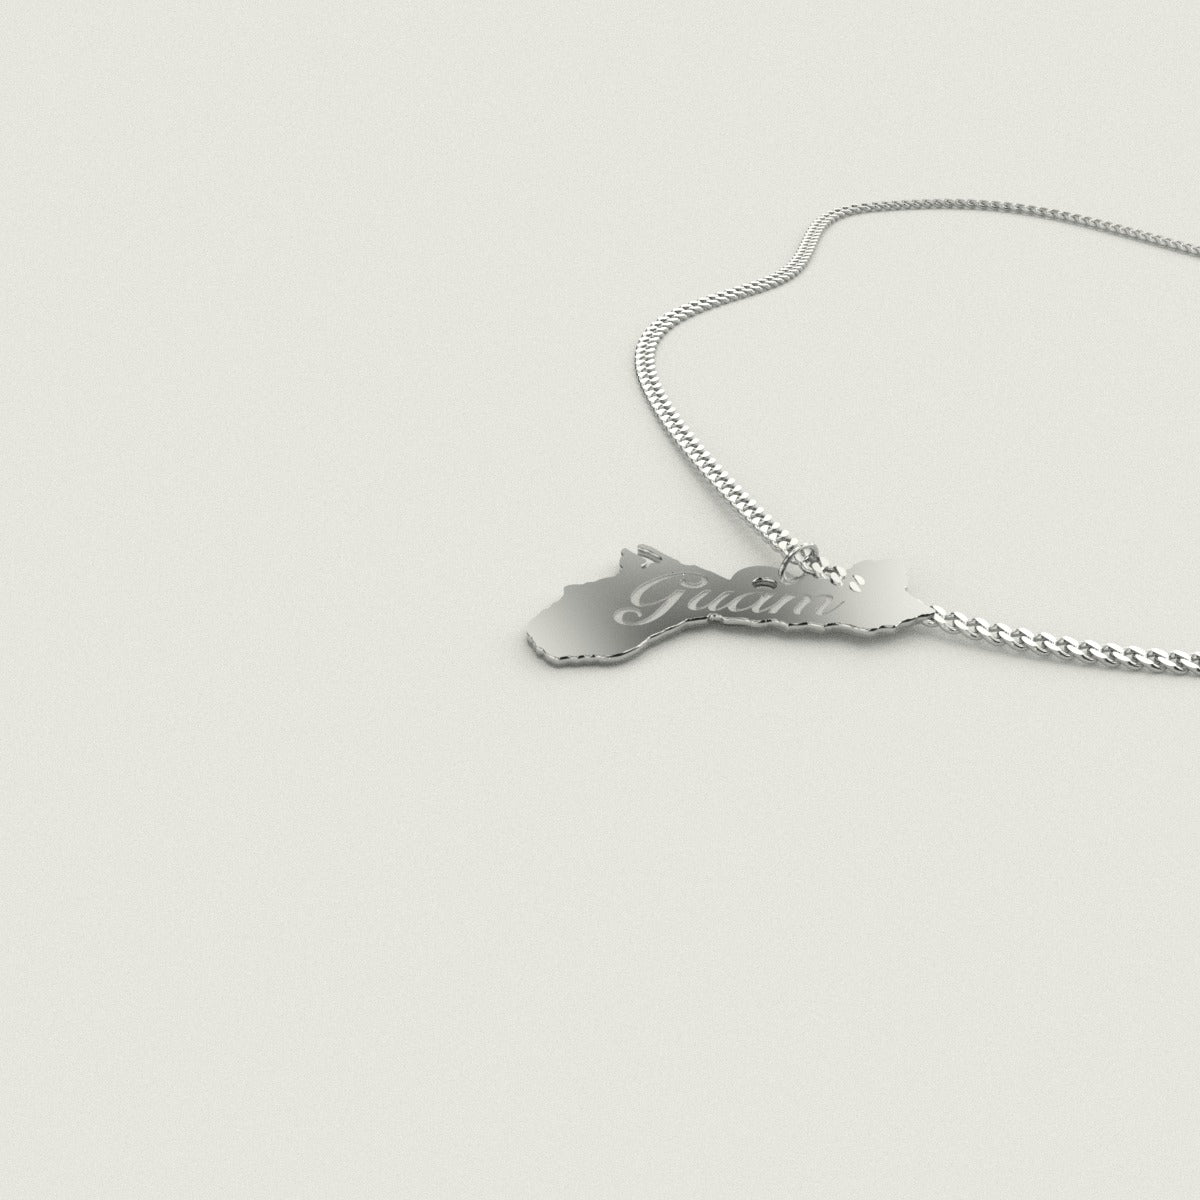 Island of Guam Sterling Silver Necklace